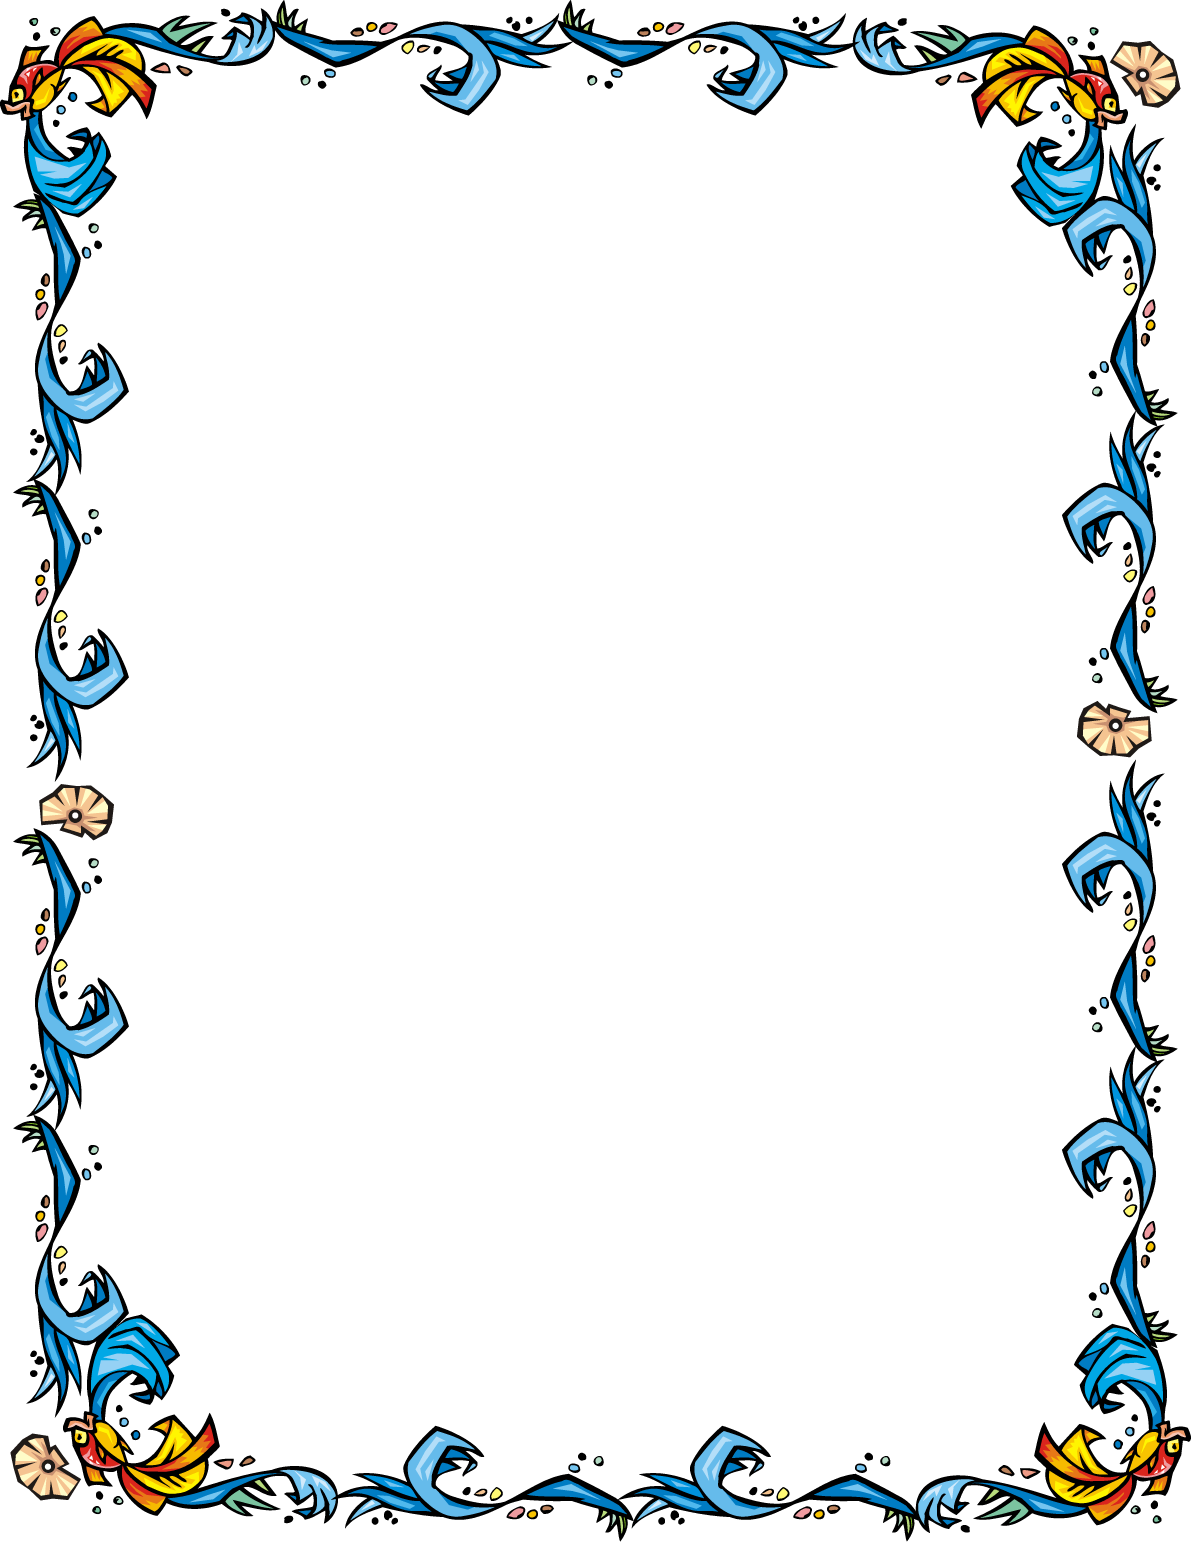 Water border png. Free fish swimming in